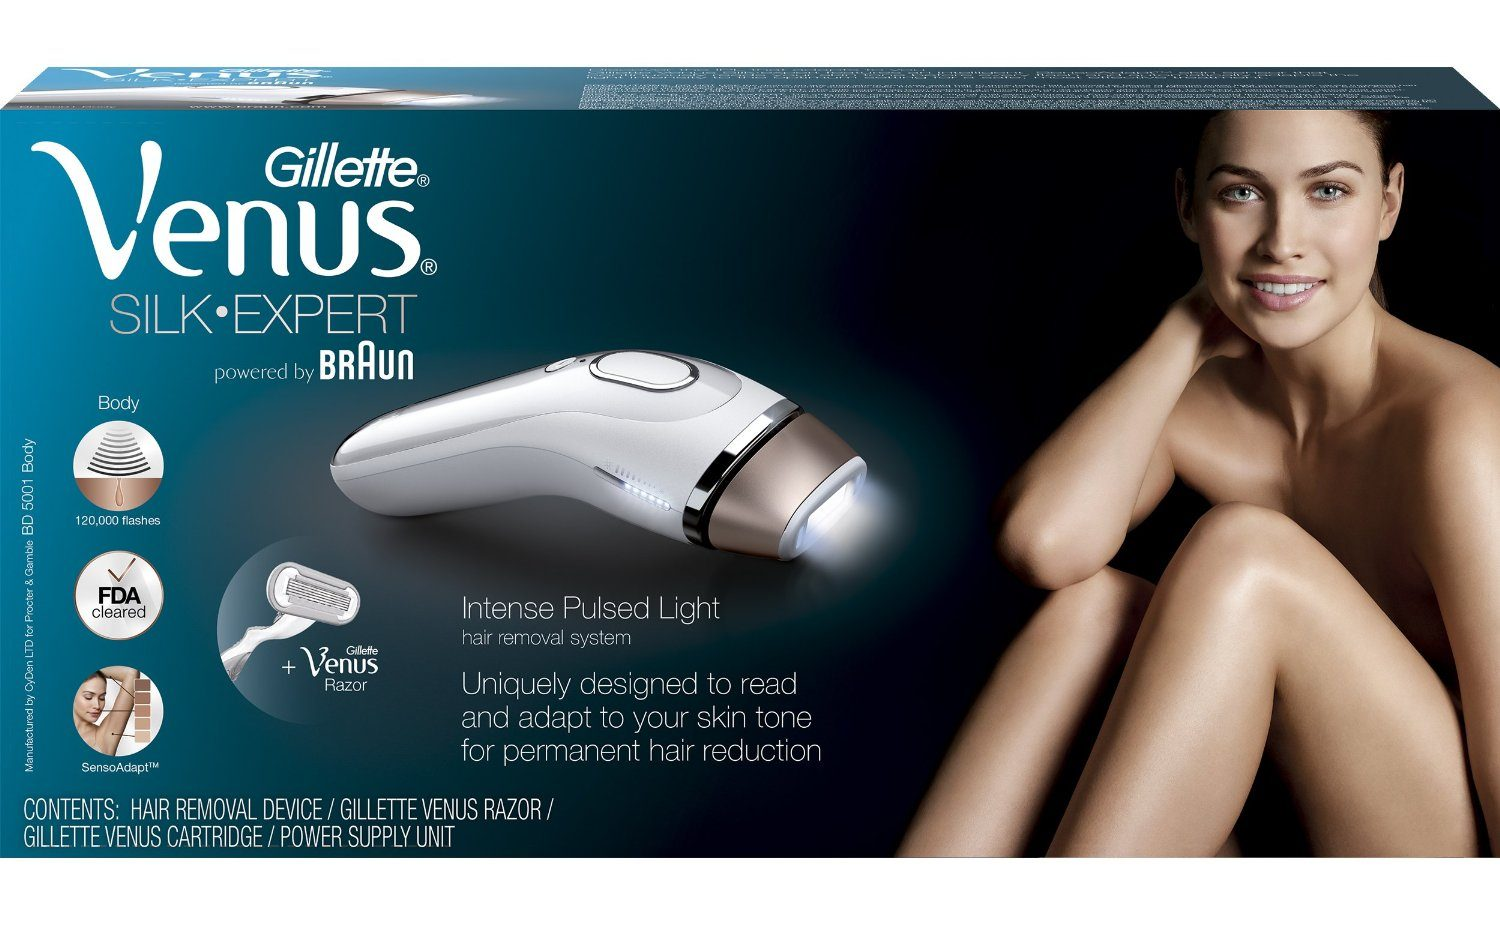 Using The Gillette Venus Silk Expert Ipl Hair Removal Device The